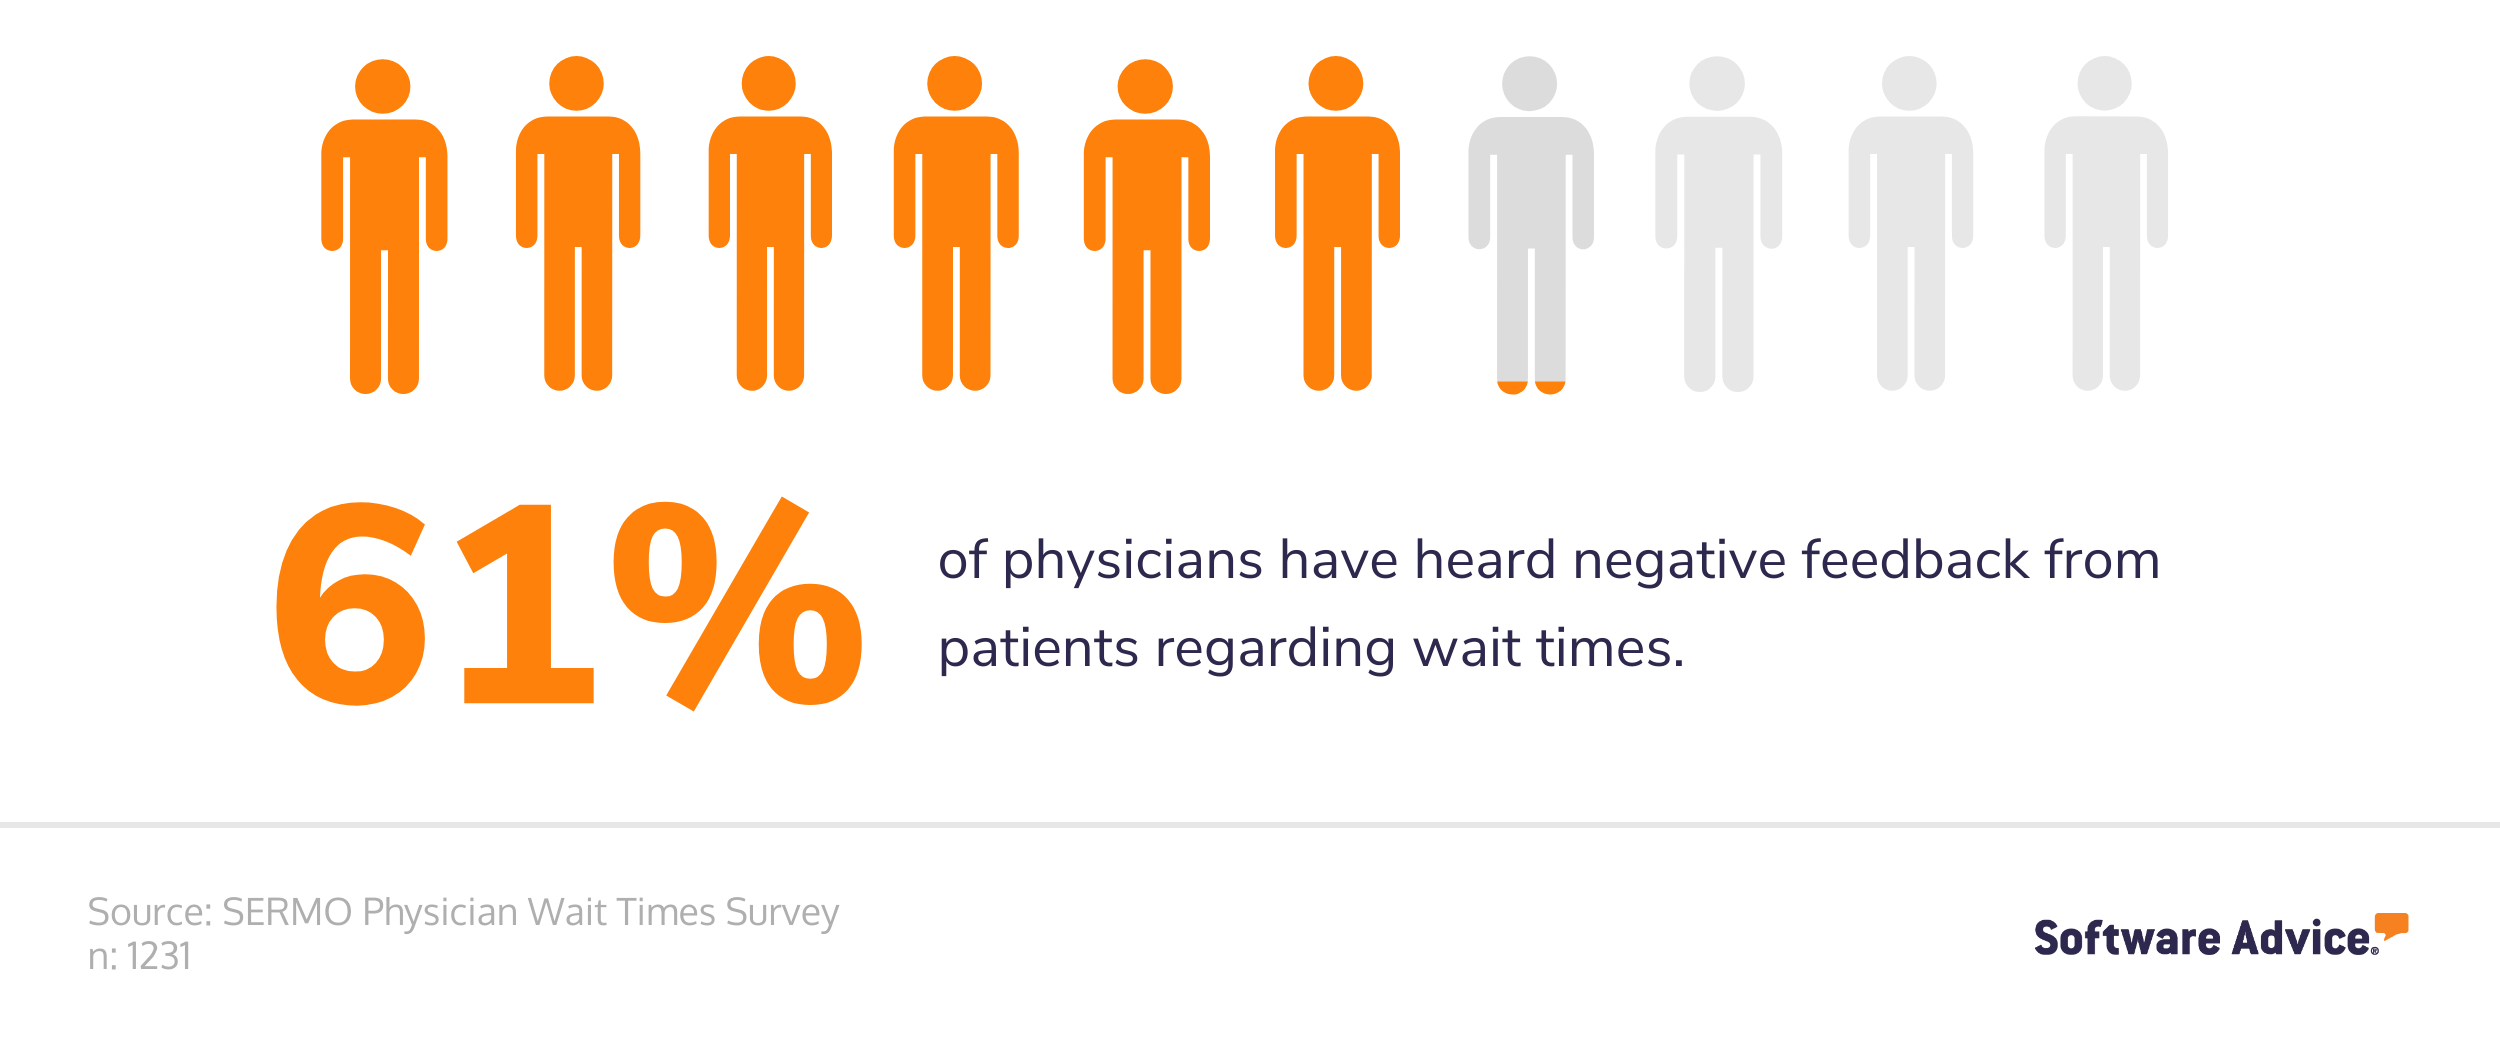 61% of physicians have had negative feedback in regards to wait time